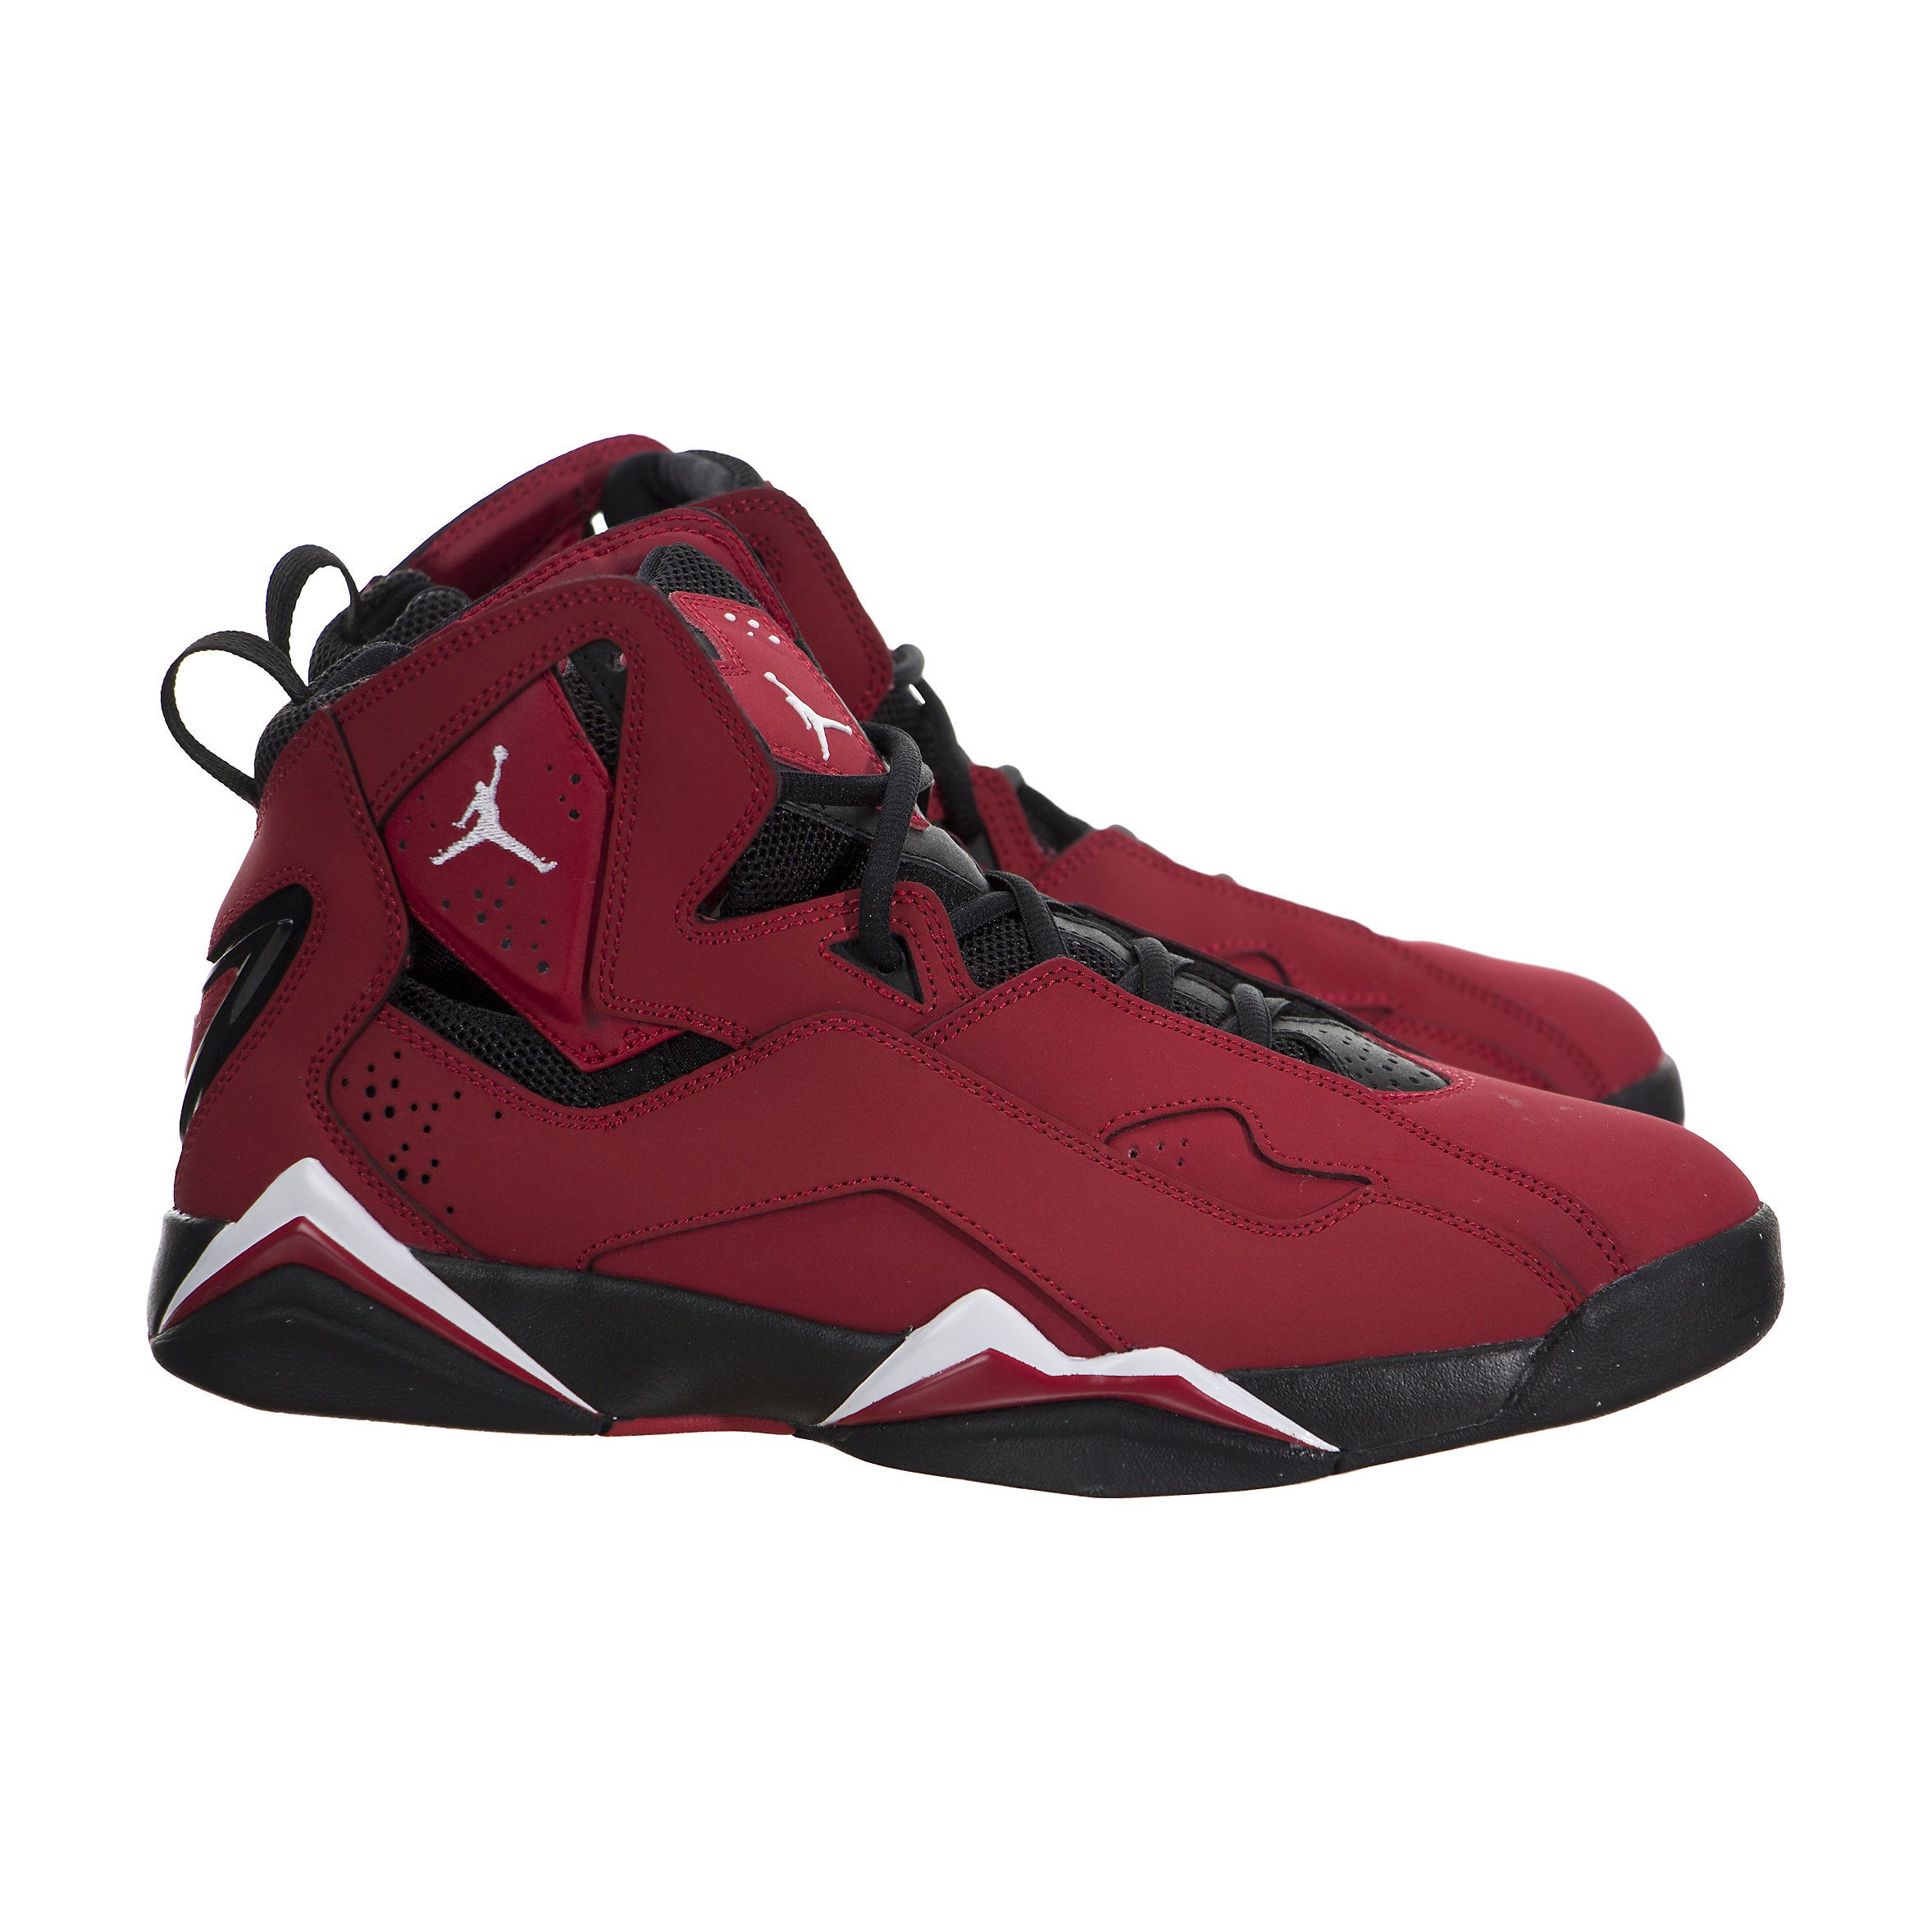 In many ways the Air Jordan True Flight mimics the design of the Air Jordan  VII, but also has upgraded features. This exceptional basketball sneaker ...